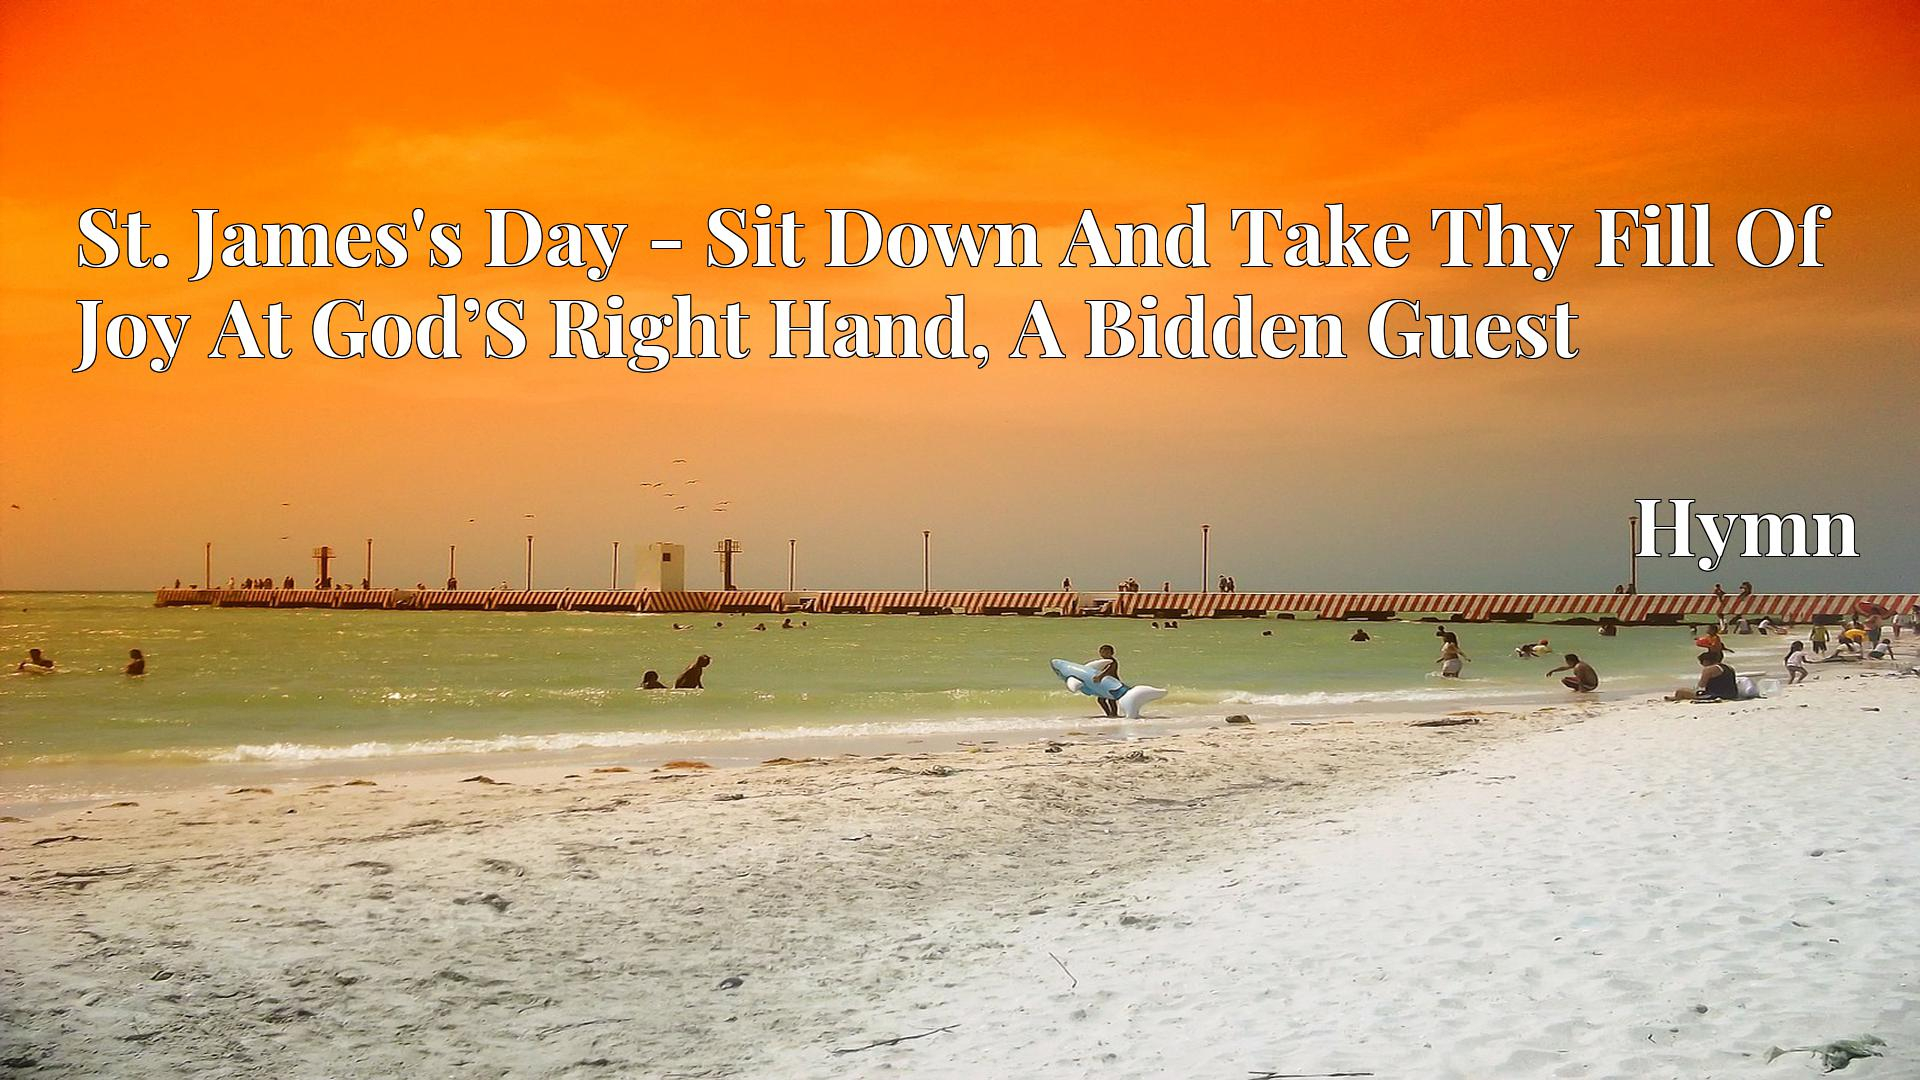 St. James's Day - Sit Down And Take Thy Fill Of Joy At God'S Right Hand, A Bidden Guest Hymn